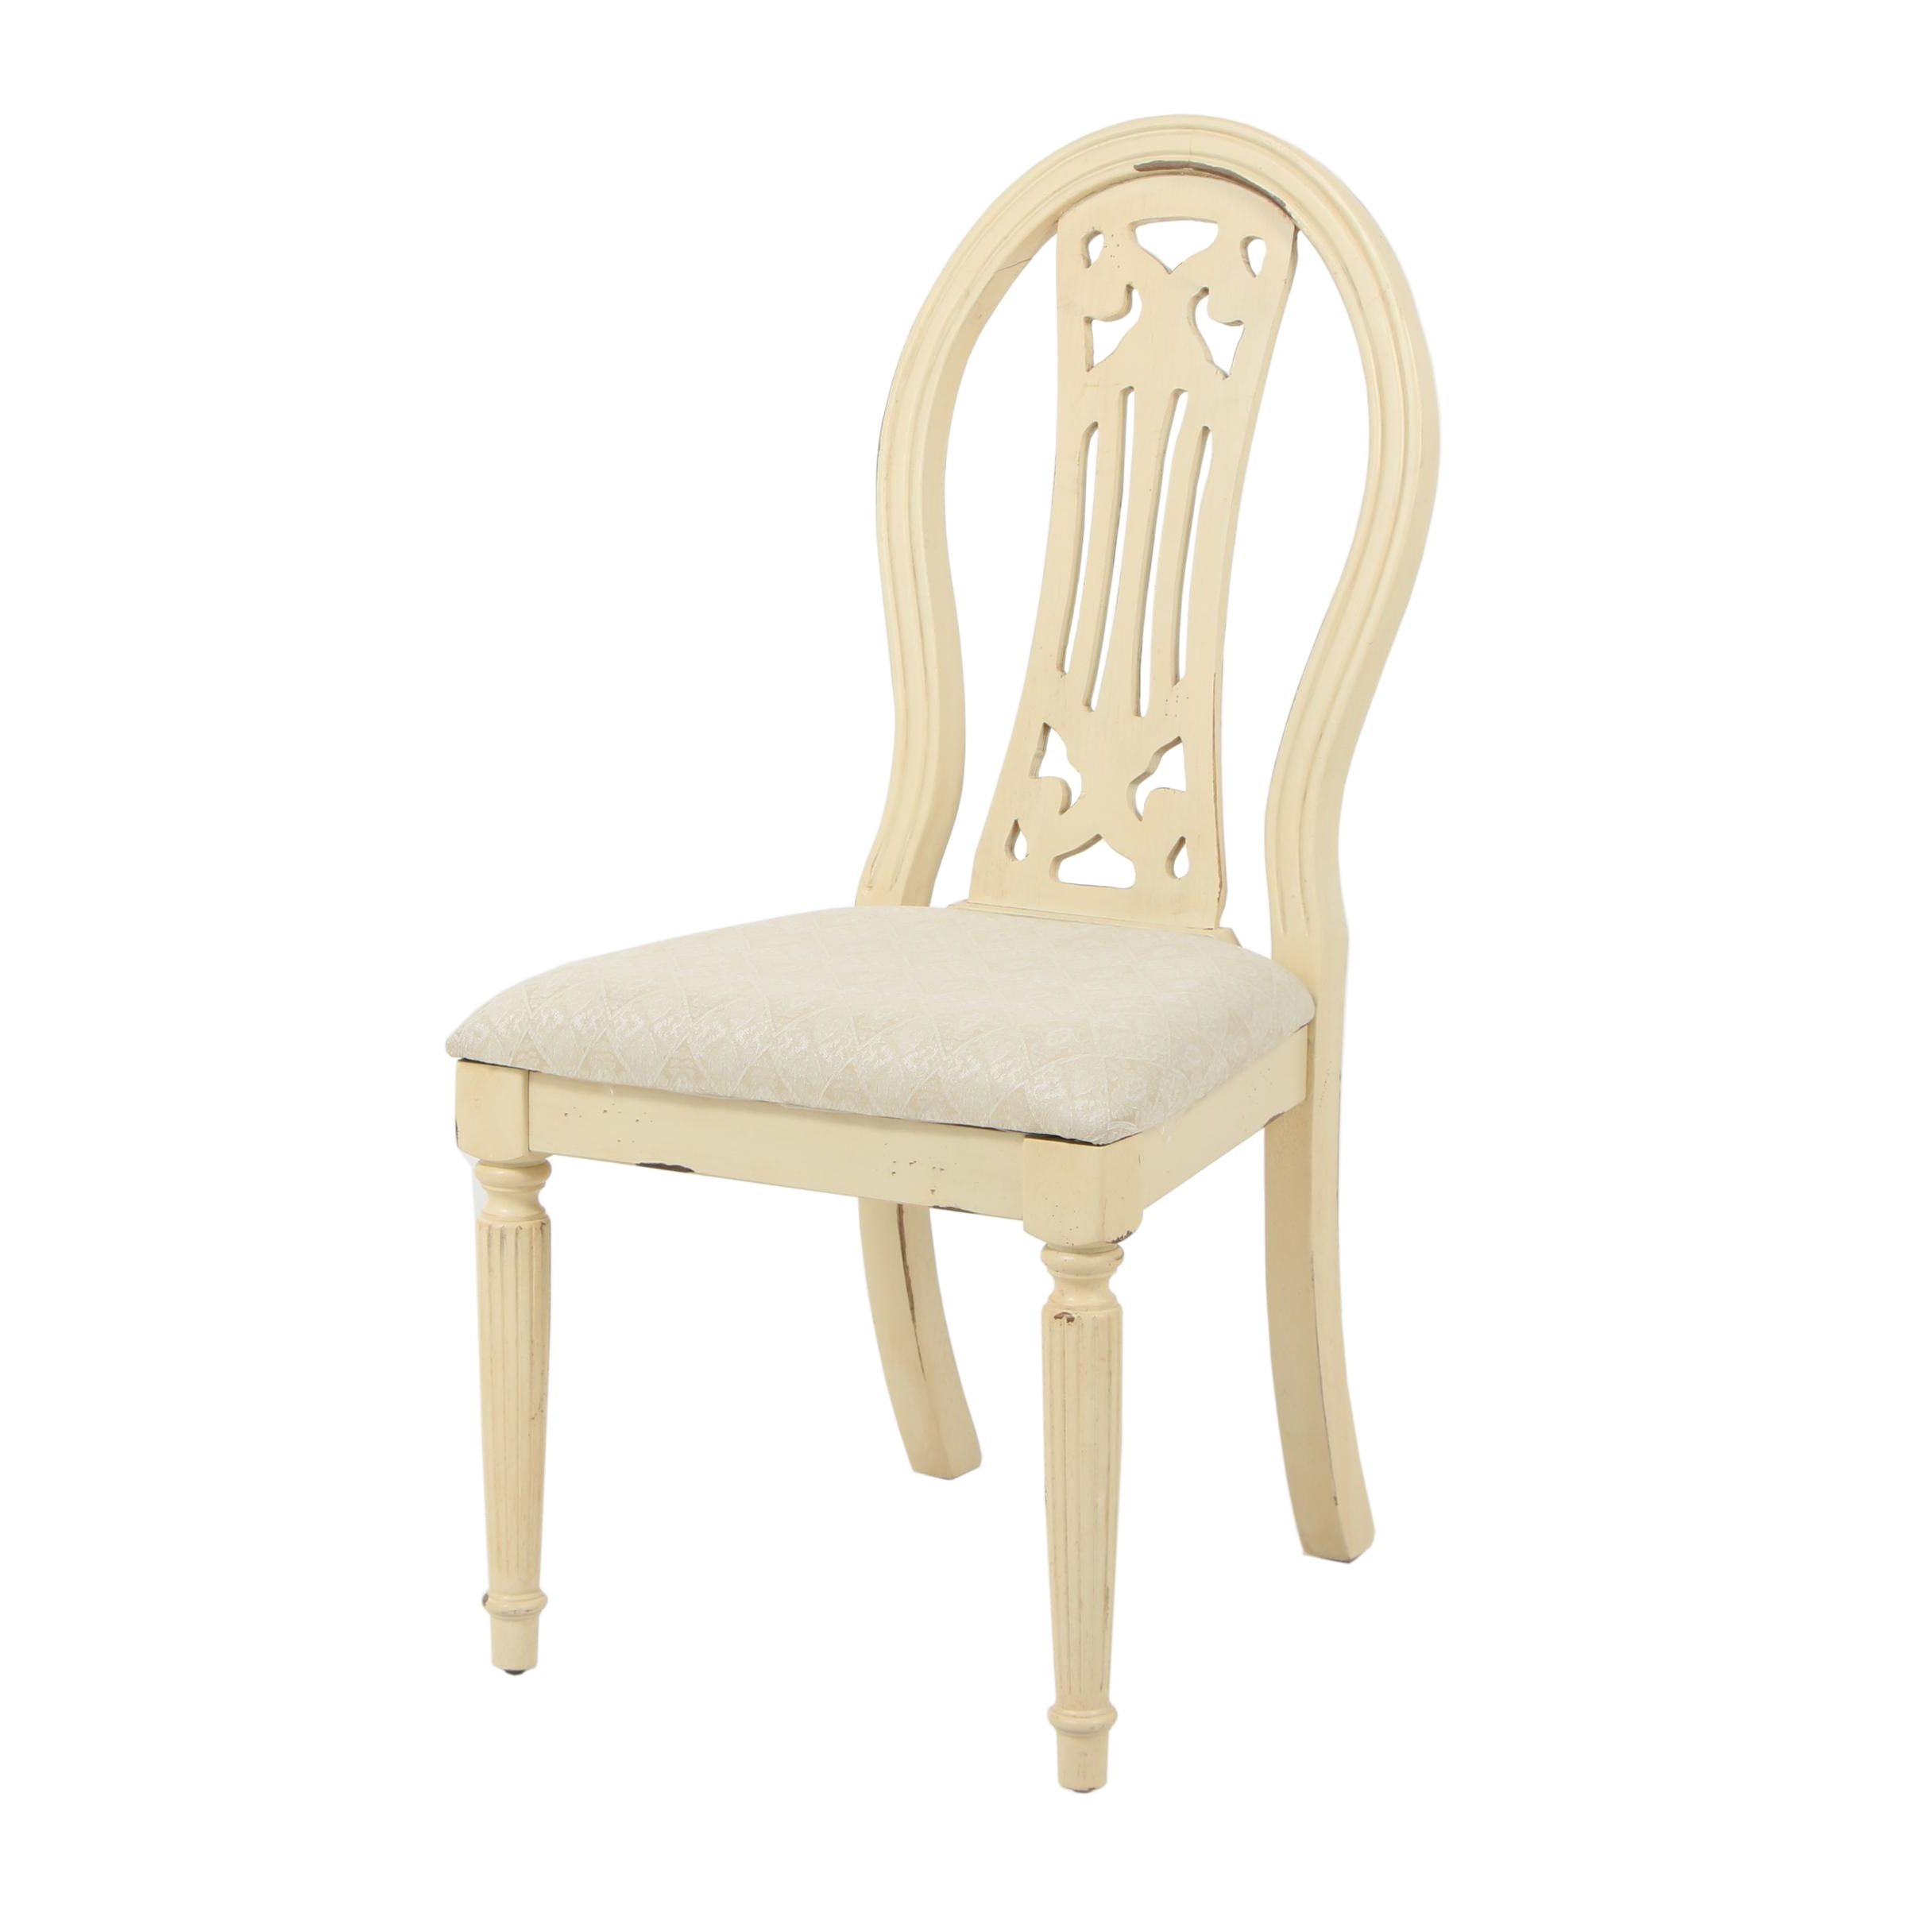 Vintage Wooden Accent Chair